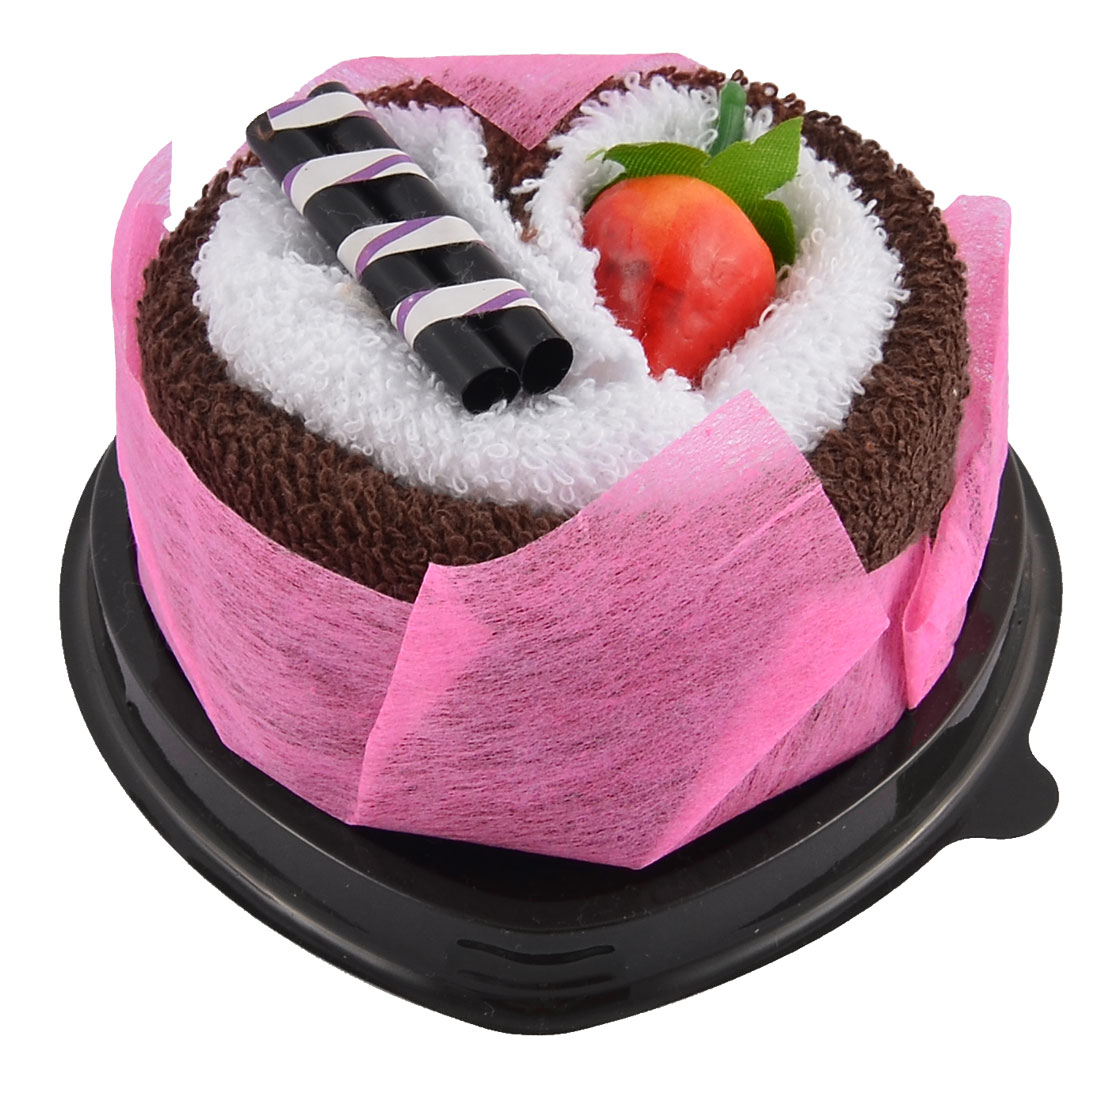 Simulated Strawberry Chocolate Bar Detail Heart Shape Cupcake Towel Washcloth Decor Gift Coffee Color